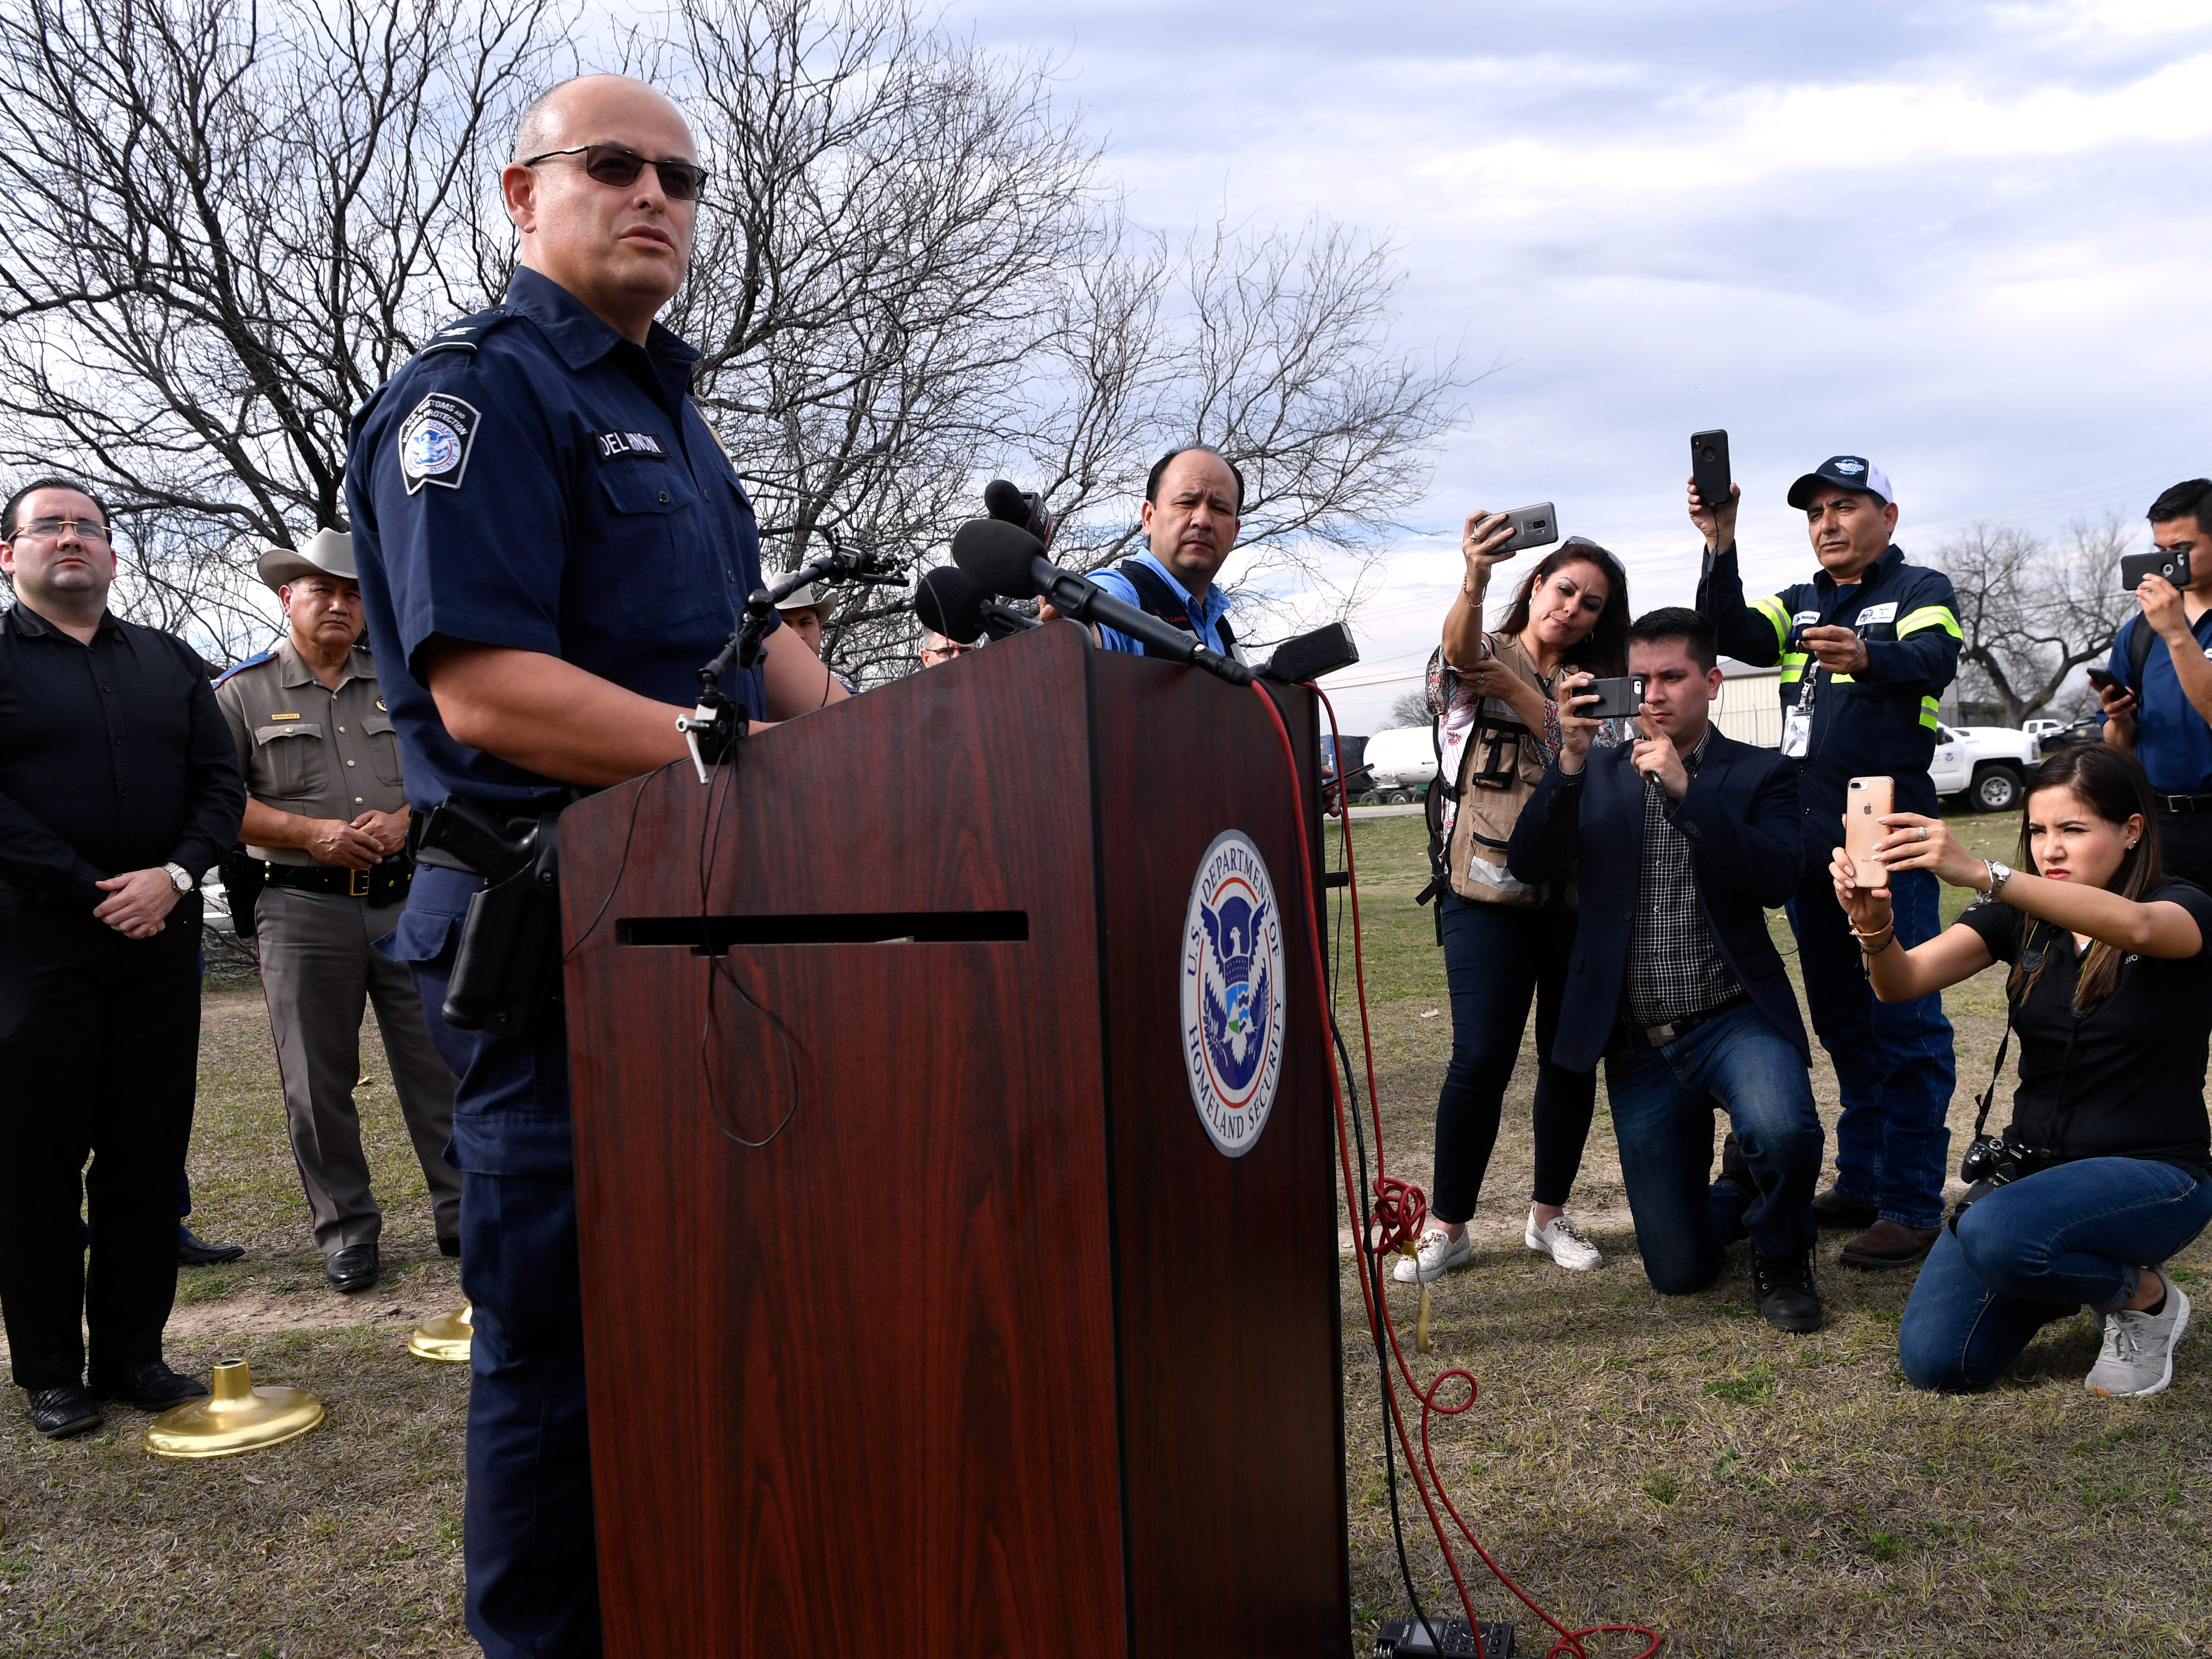 Paul Del Rincon, the port director for the Eagle Pass Port of Entry, speaks to reporters Wednesday Feb. 6, 2019 about his agency's preparedness regarding the recently-arrived migrant caravan in Piedras Negras.